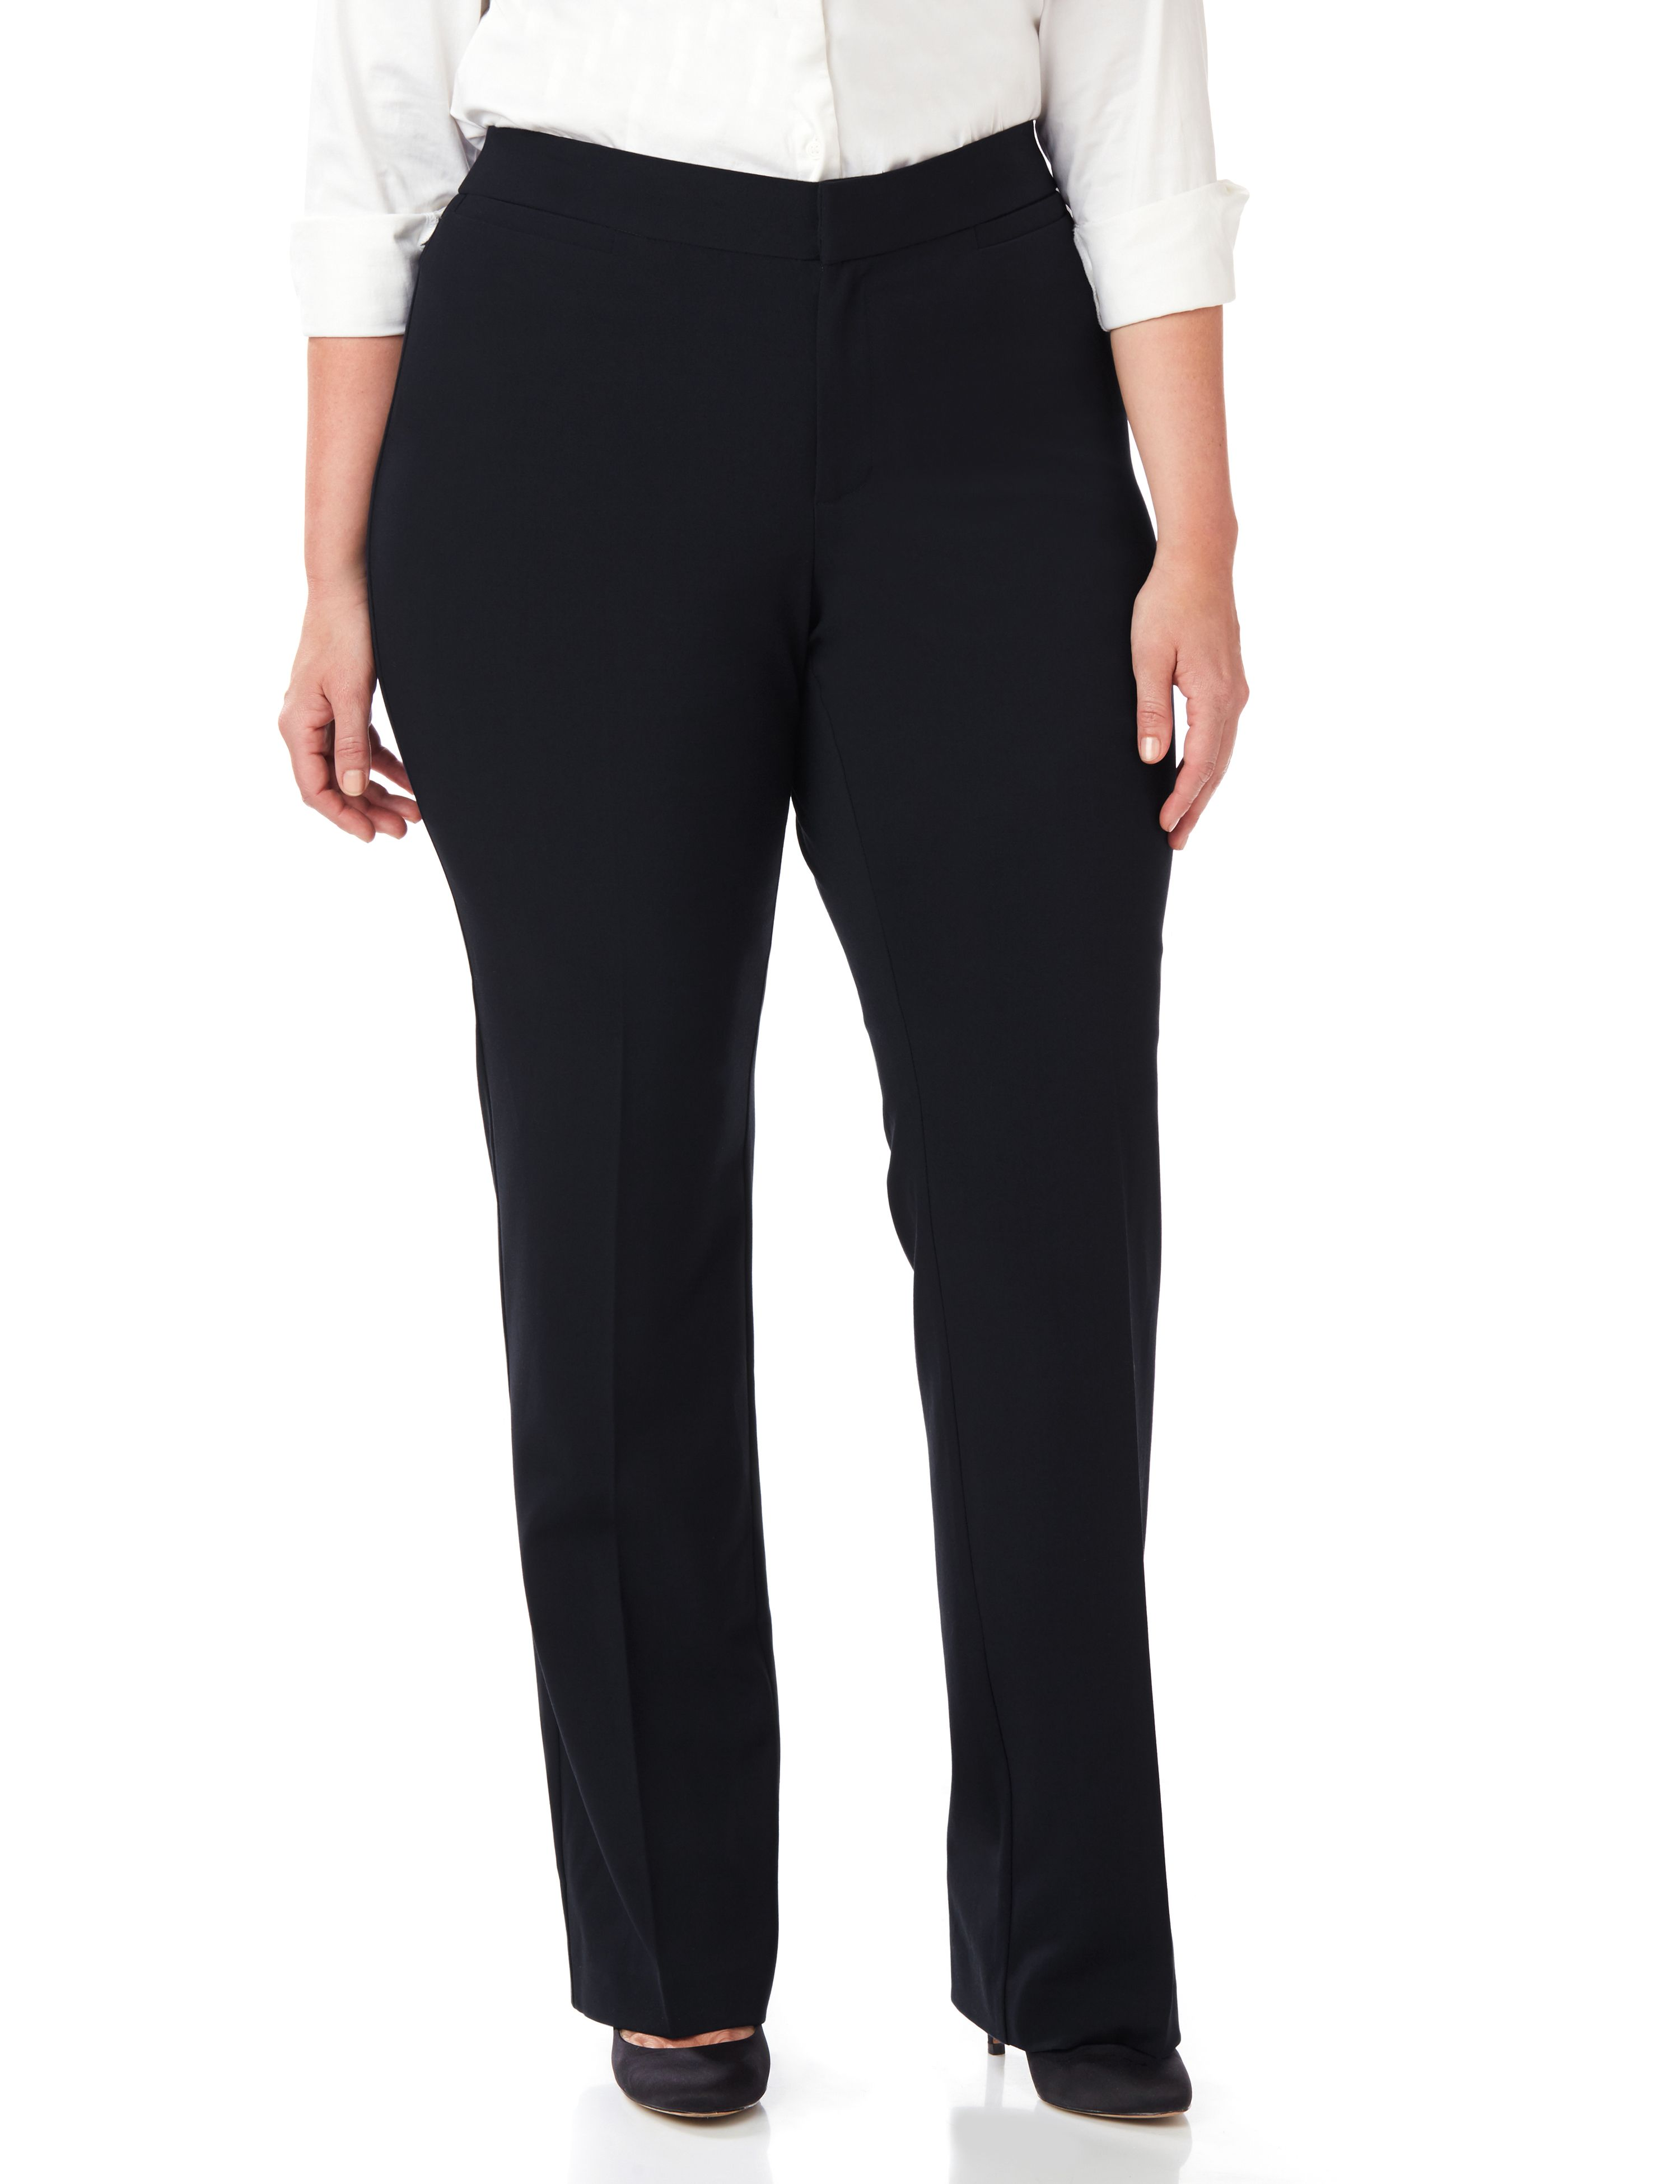 Right Fit Pant (Curvy) Right Fit Pant (Curvy) MP-201373935